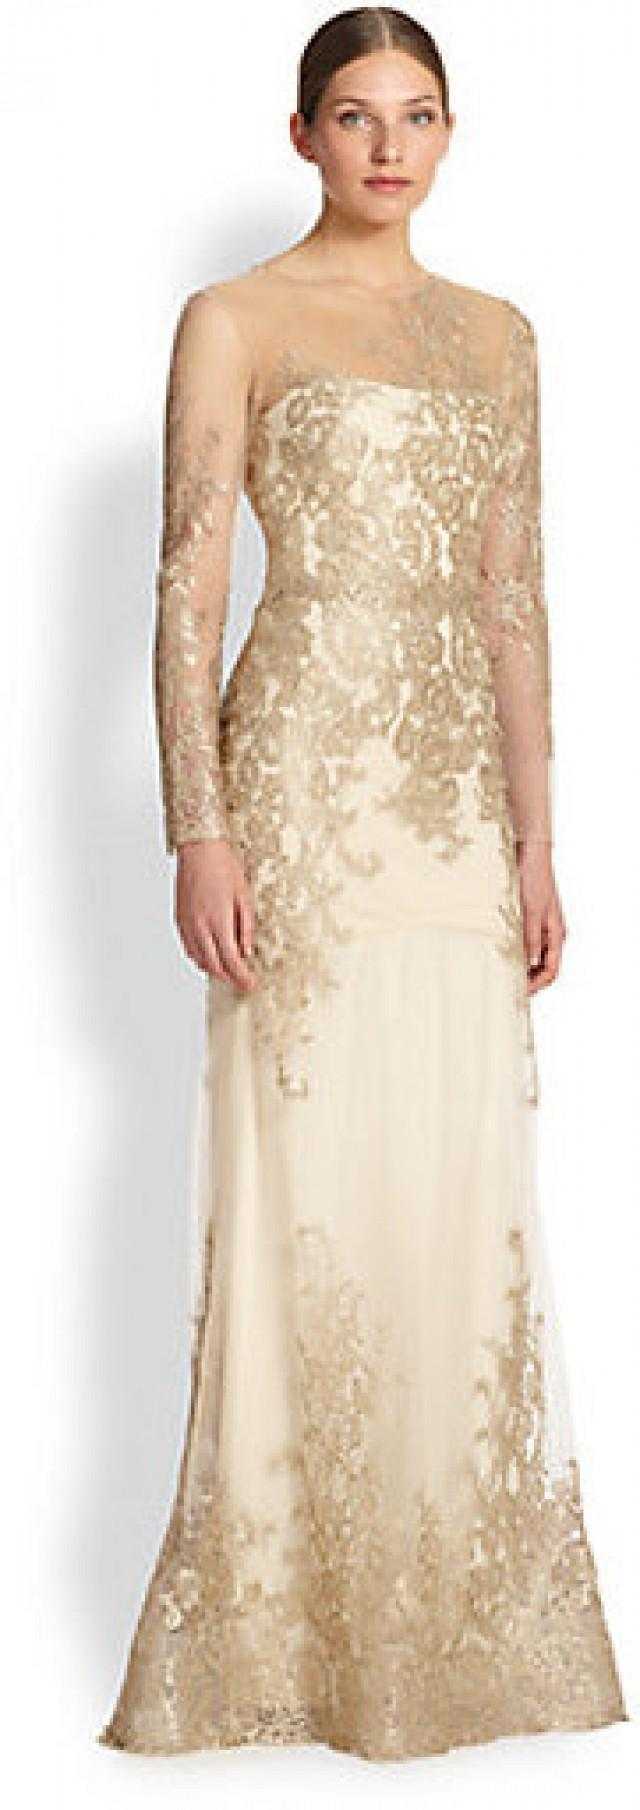 Notte By Marchesa Floral & Lace Mermaid Gown #2172948 - Weddbook